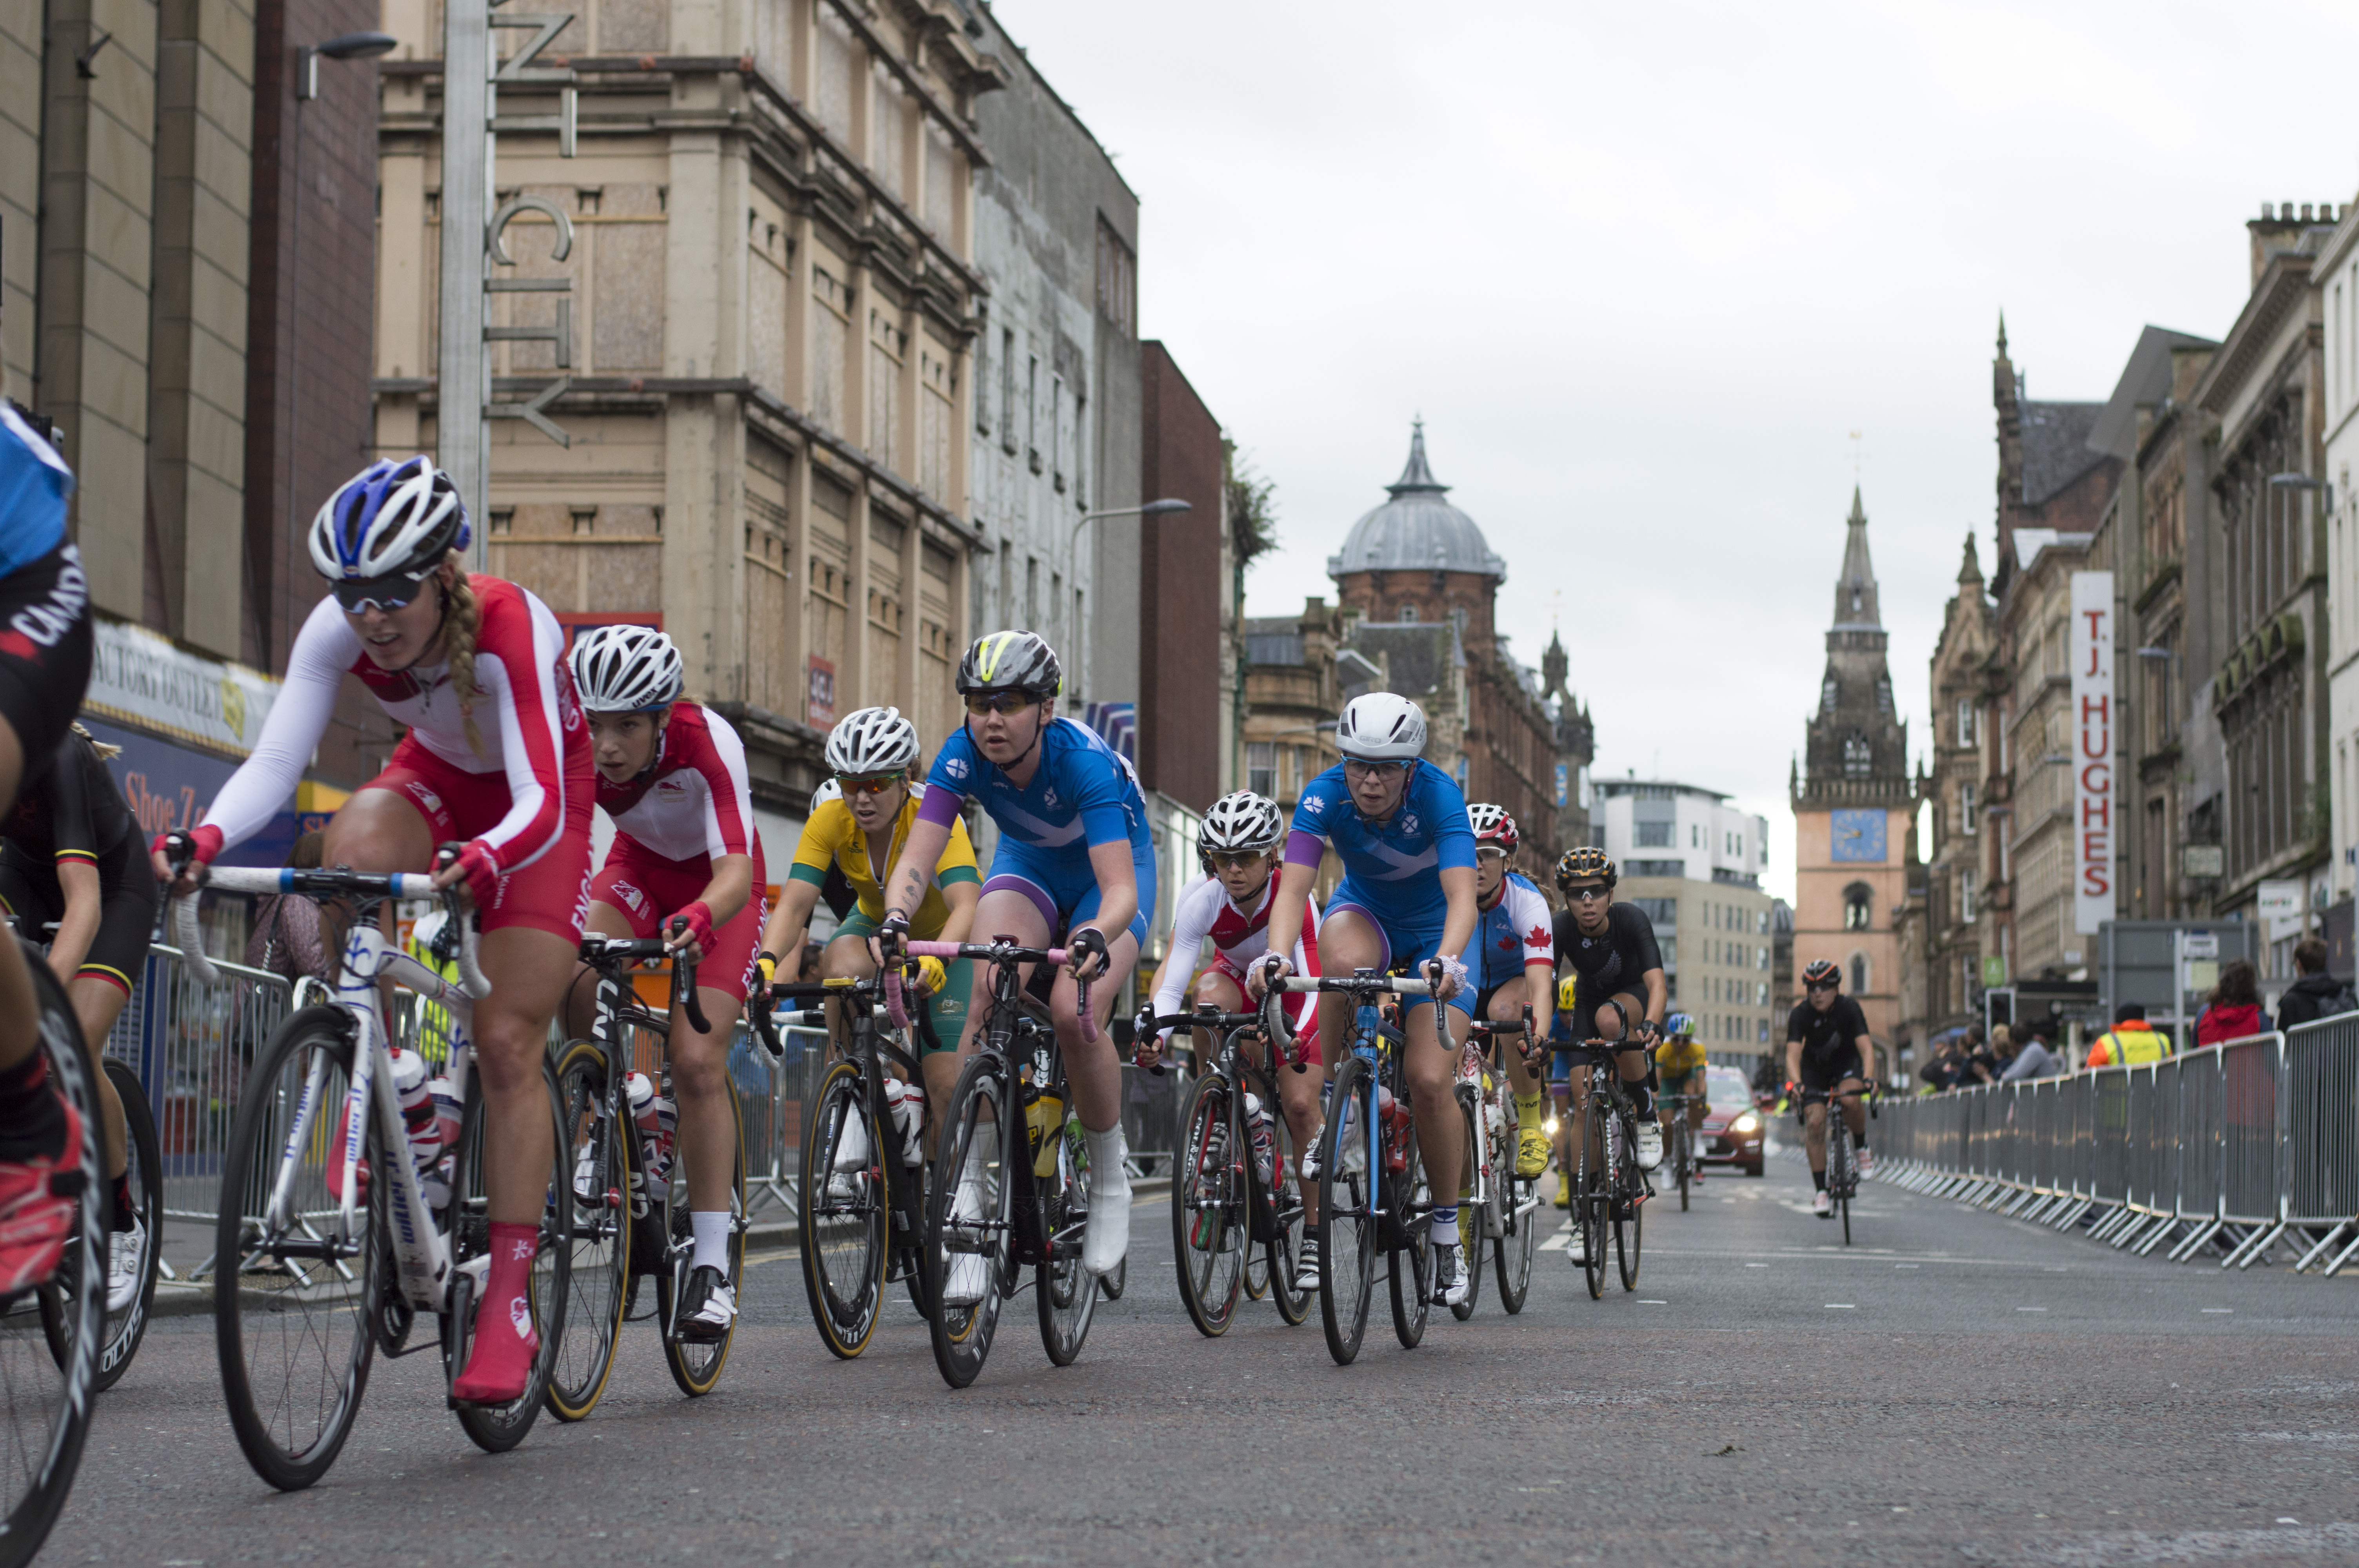 Commonwealth Games 2014 GAP's cyclists